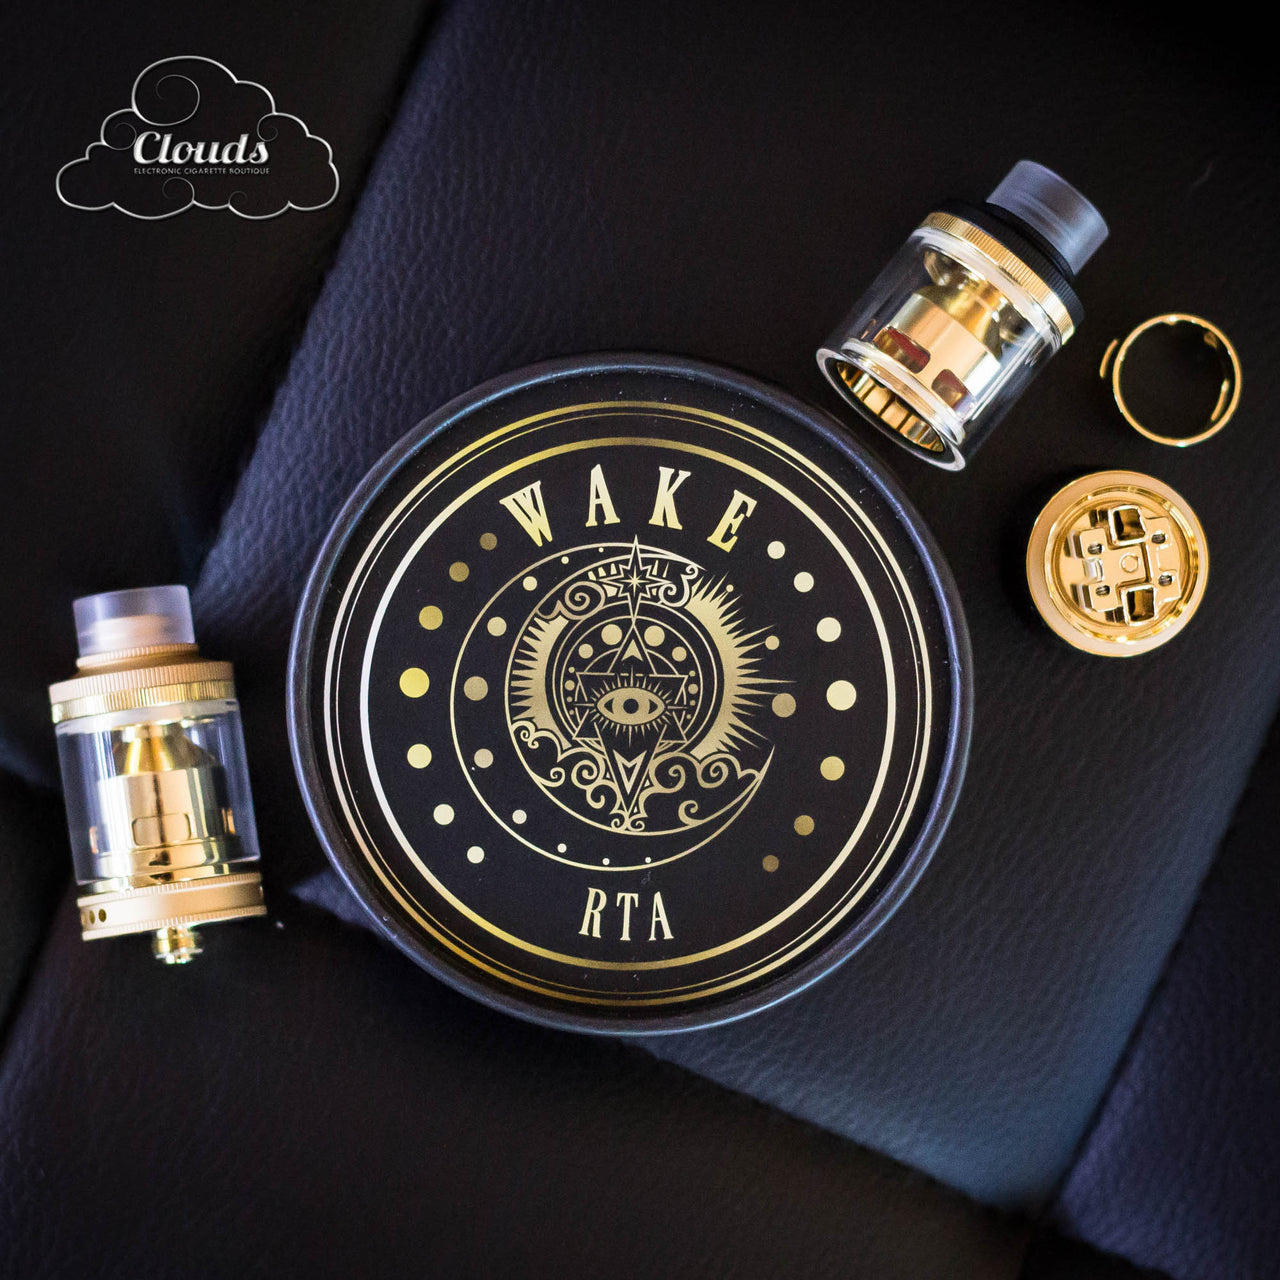 Wake Mod Co: Wake Tank RTA